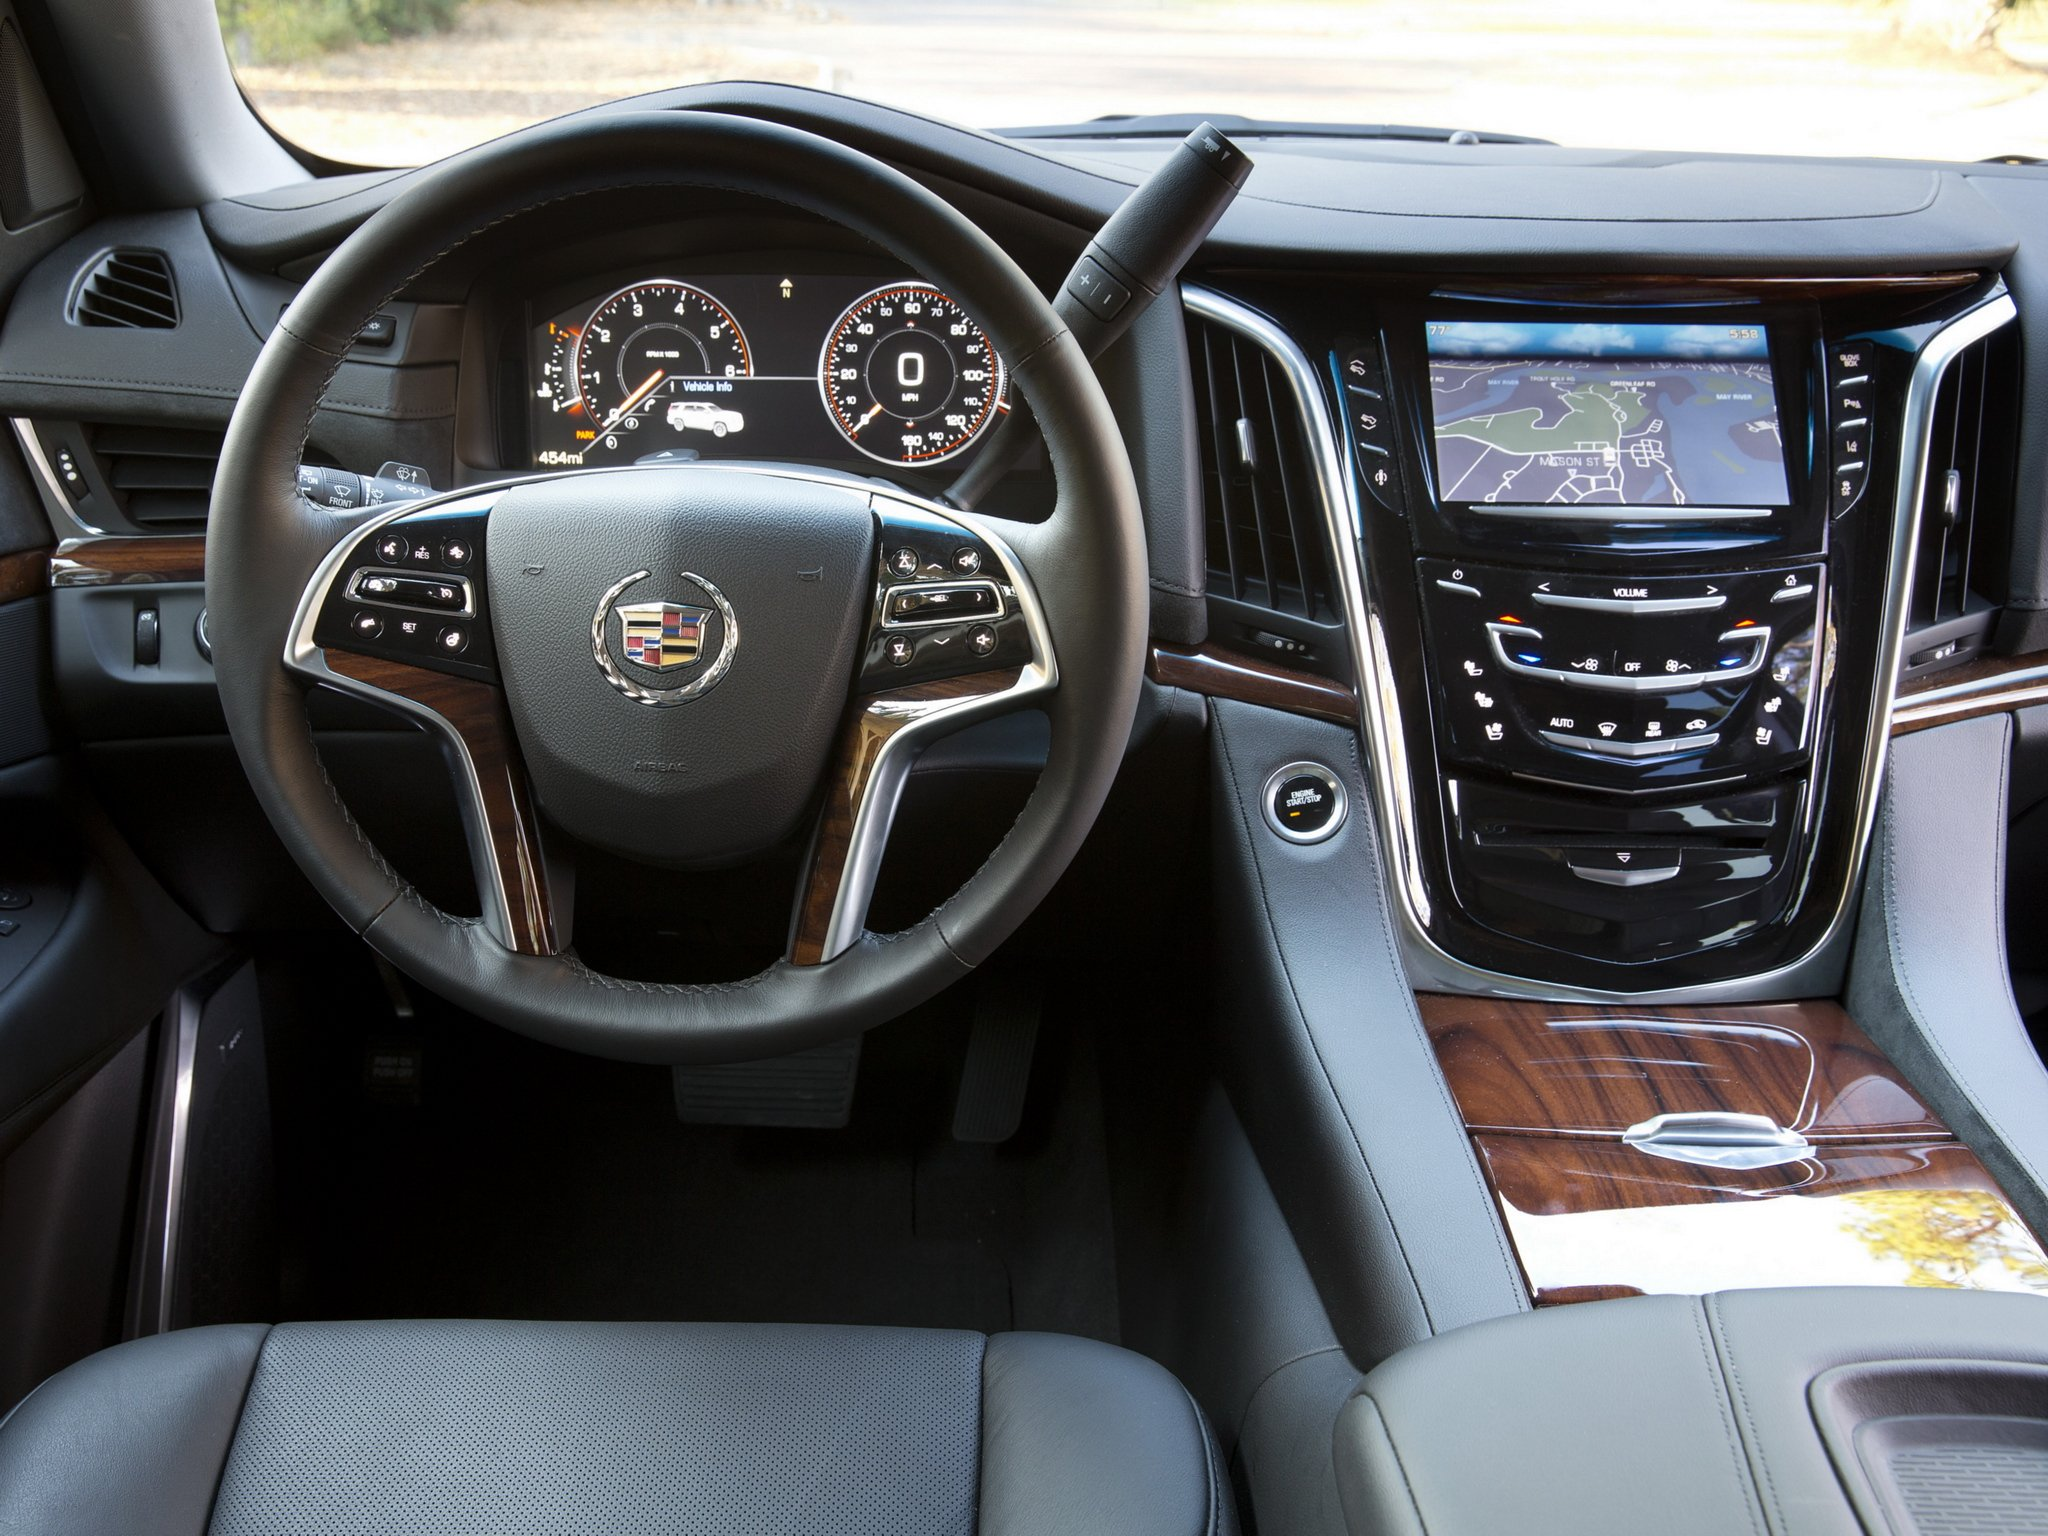 2015 cadillac escalade suv luxury interior g wallpaper 2048x1536 332217 wallpaperup. Black Bedroom Furniture Sets. Home Design Ideas